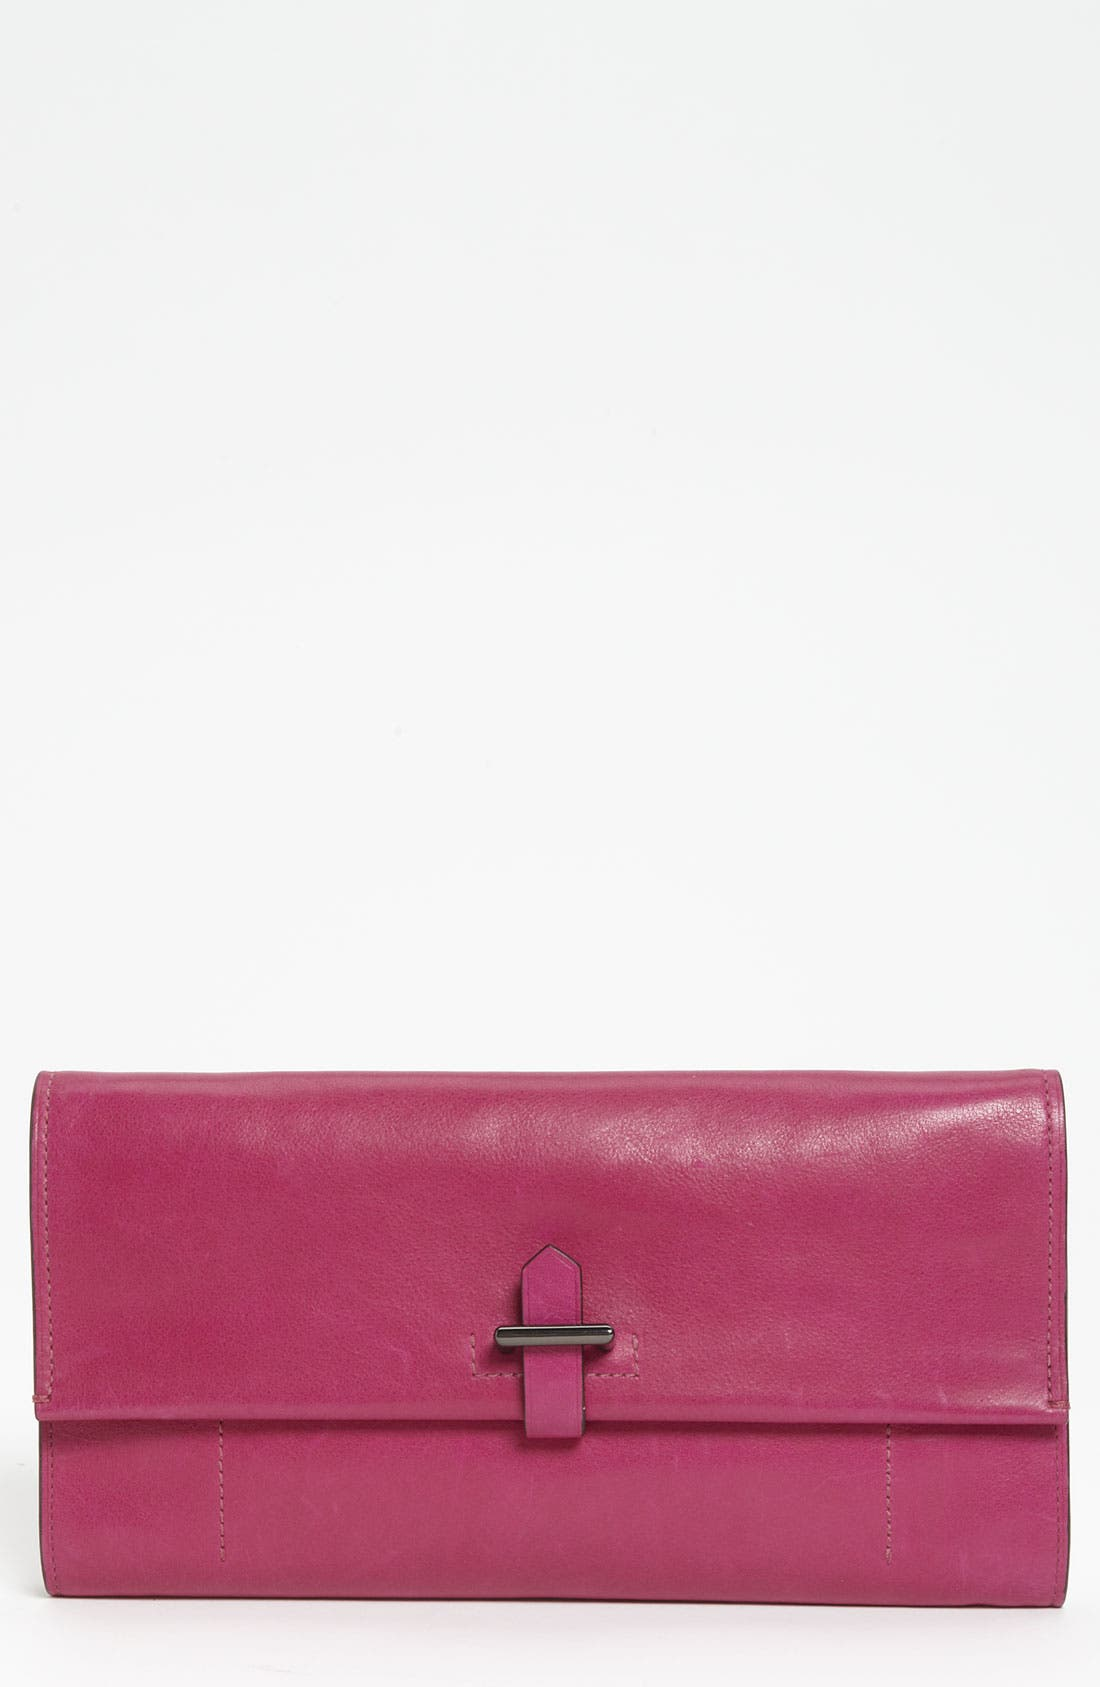 Main Image - Reed Krakoff 'Standard' Hasp Clutch